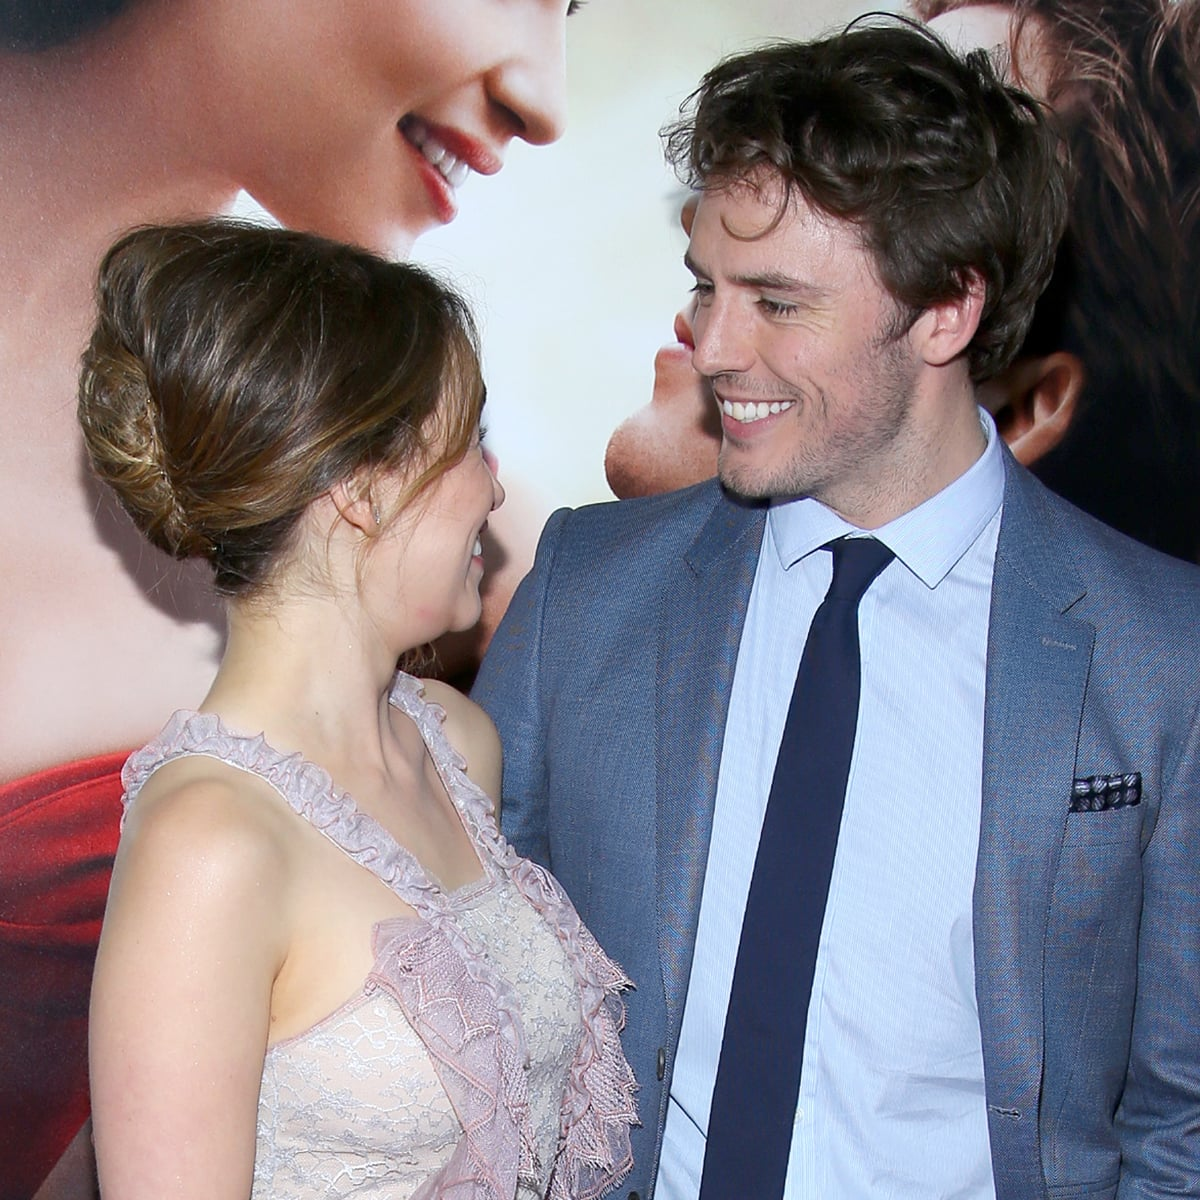 claflin personals Directed by christian ditter with sam claflin, lily collins, tamsin egerton, suki  waterhouse rosie and alex have been best friends since they.